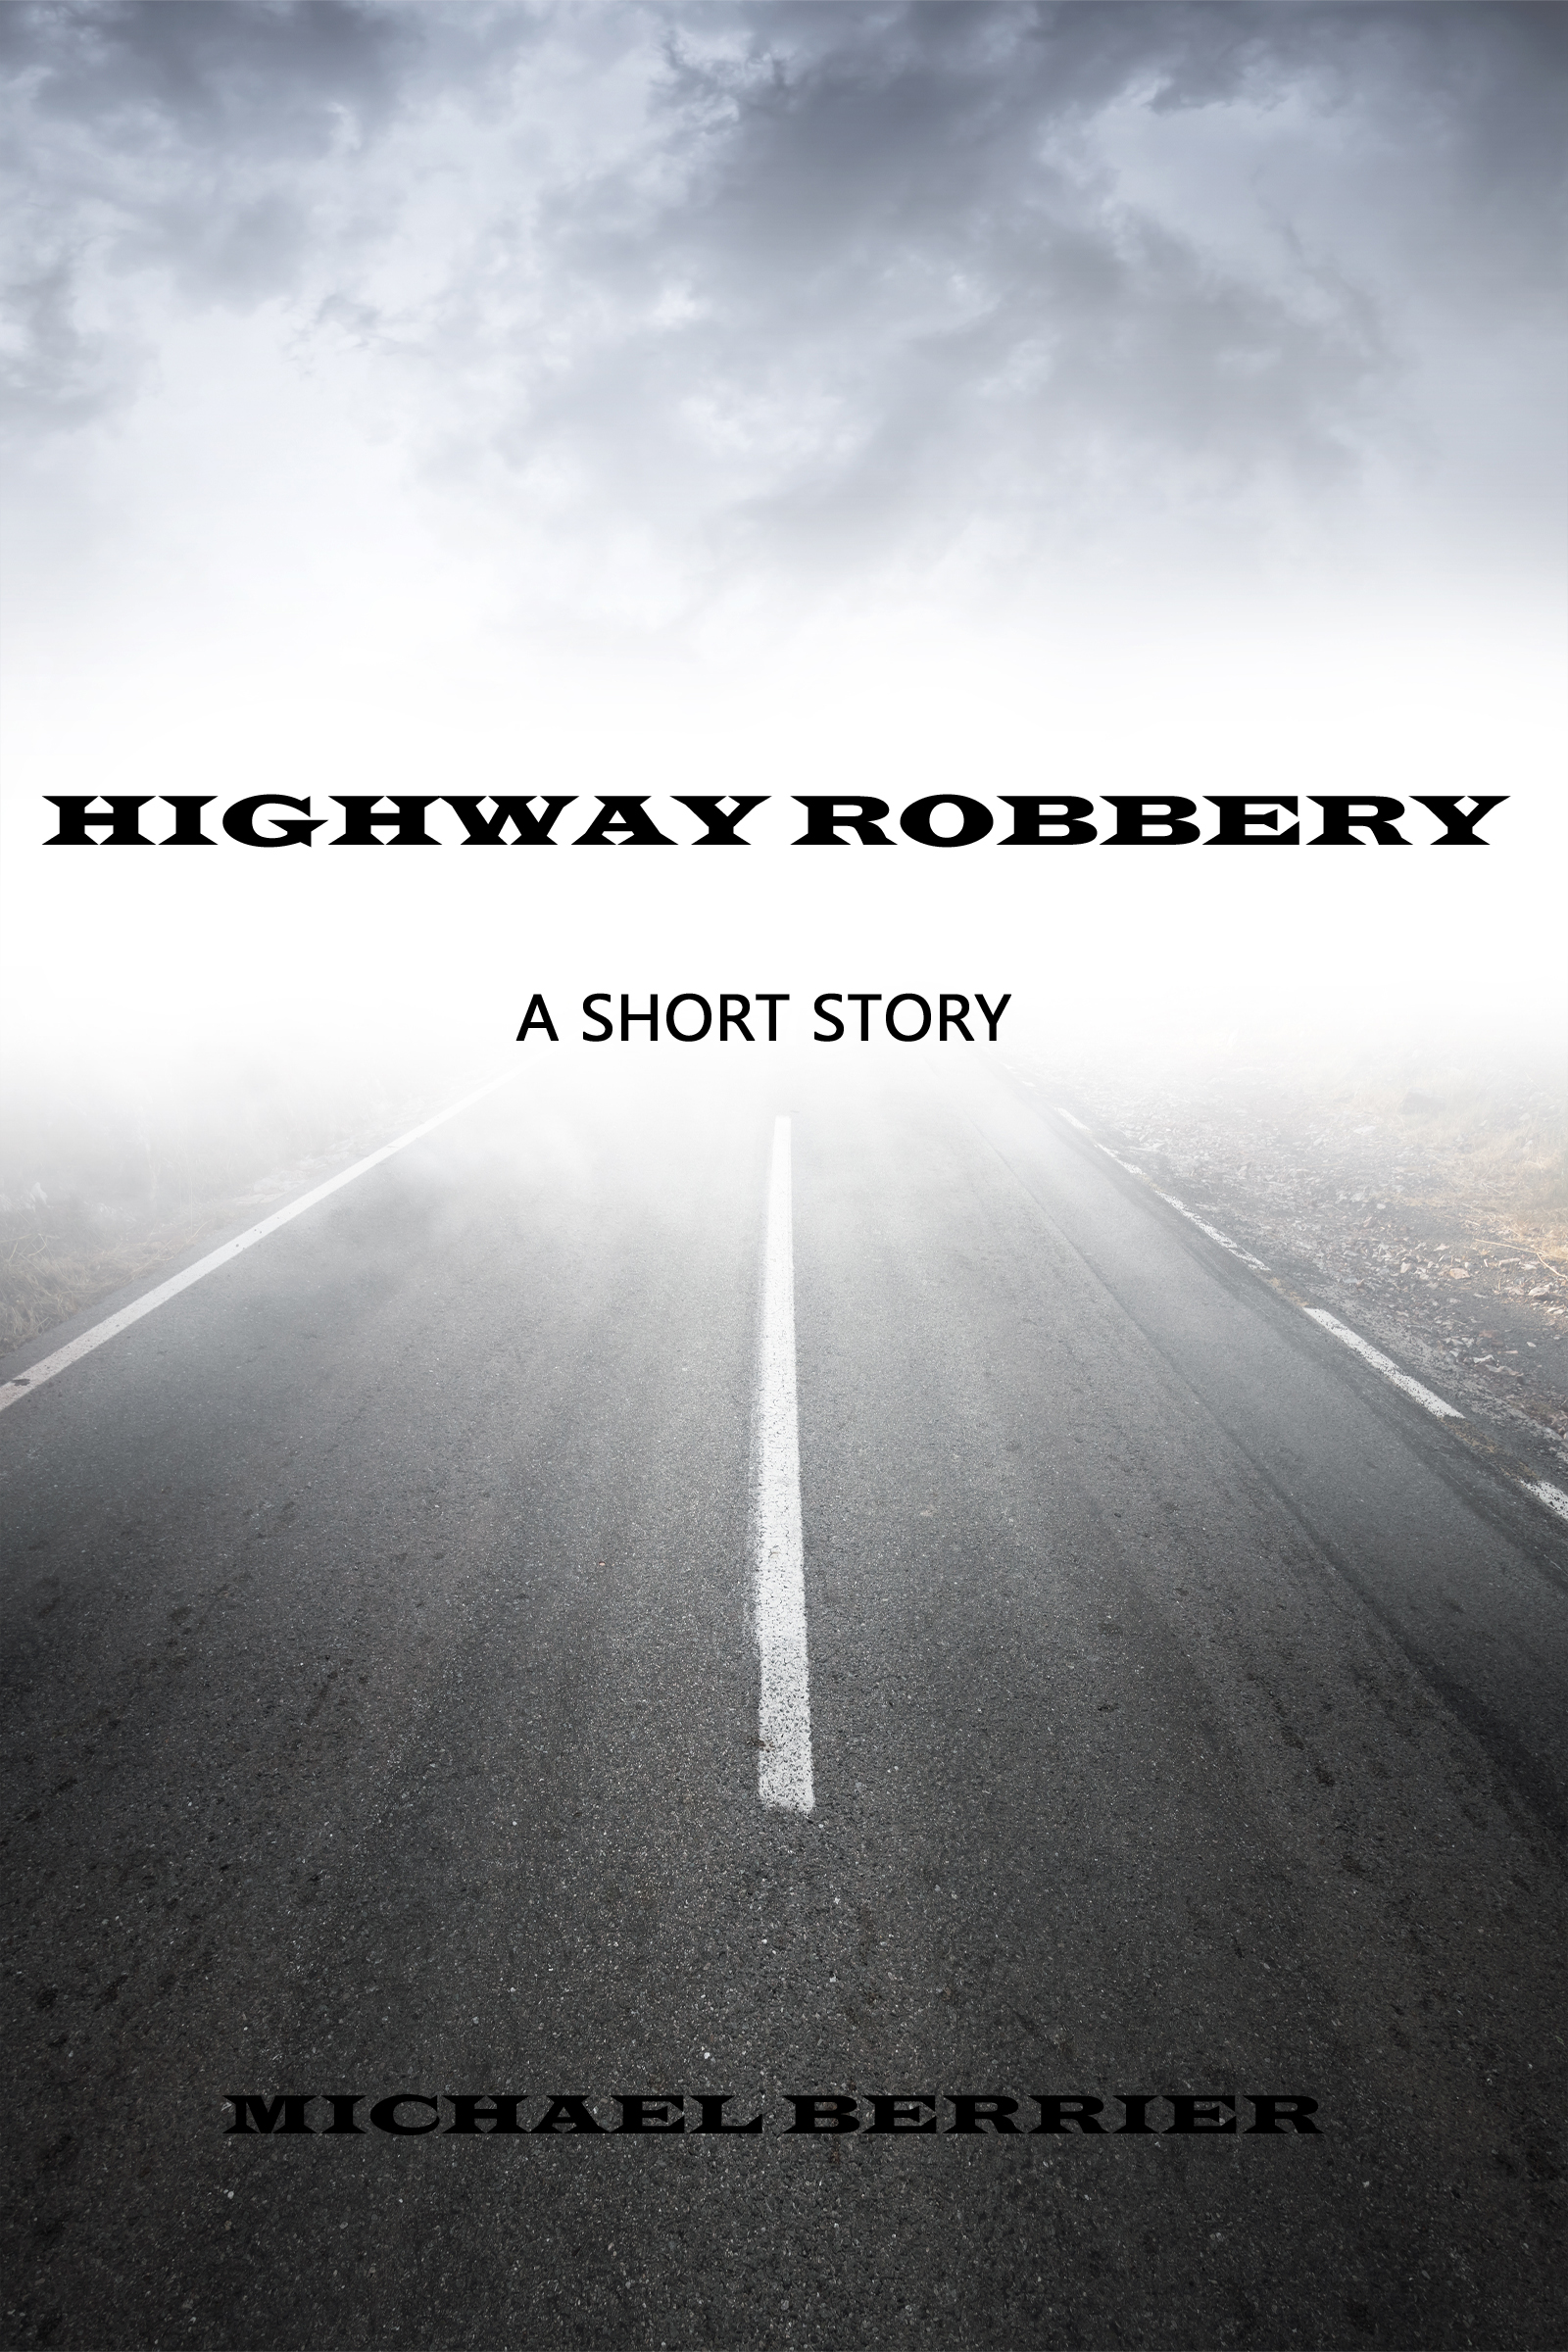 Highway Robbery (short story)